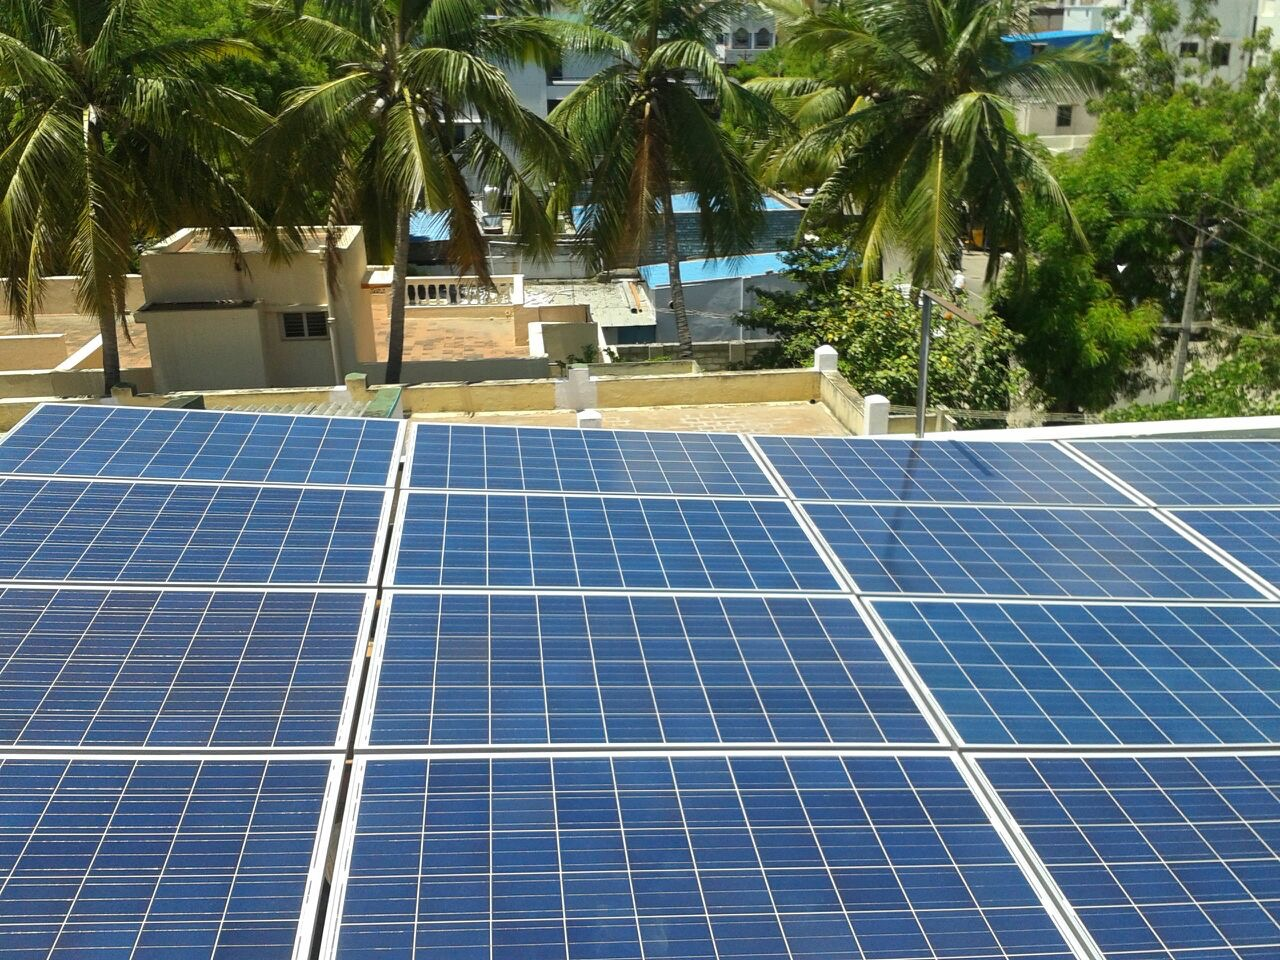 ROOFTOP SOLAR MGENPOWER